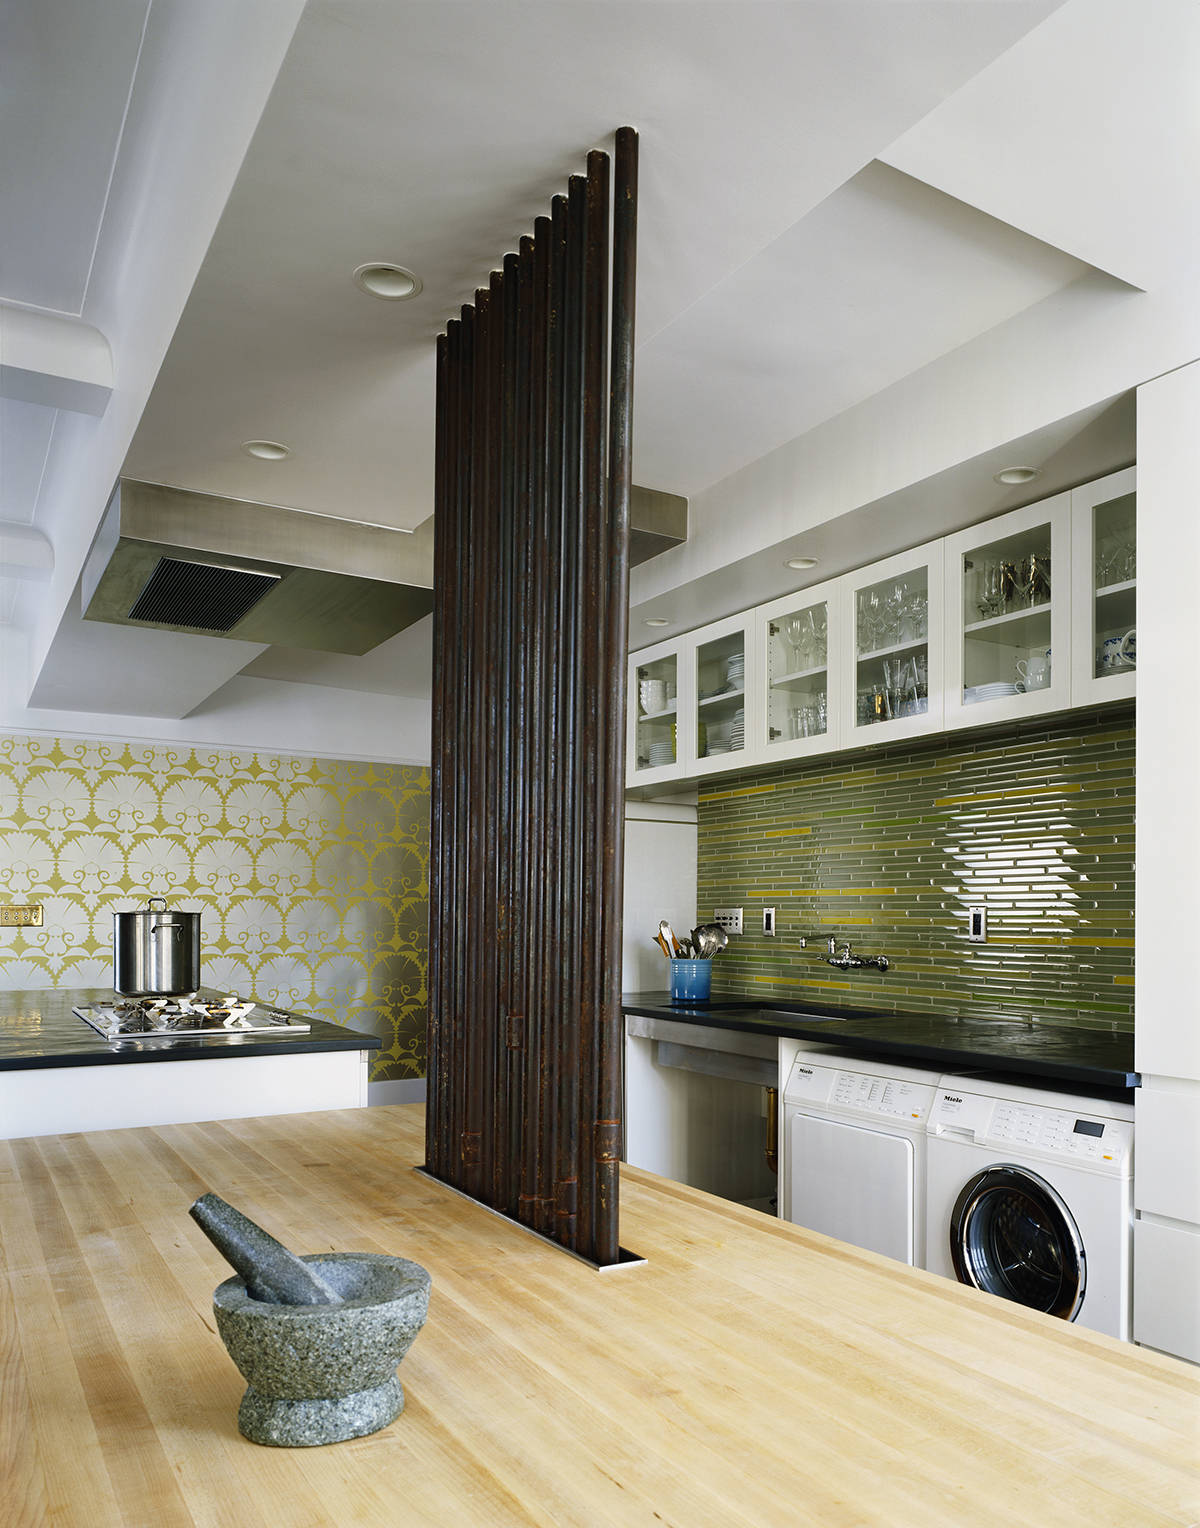 architects exposed the pipes at kitchen island